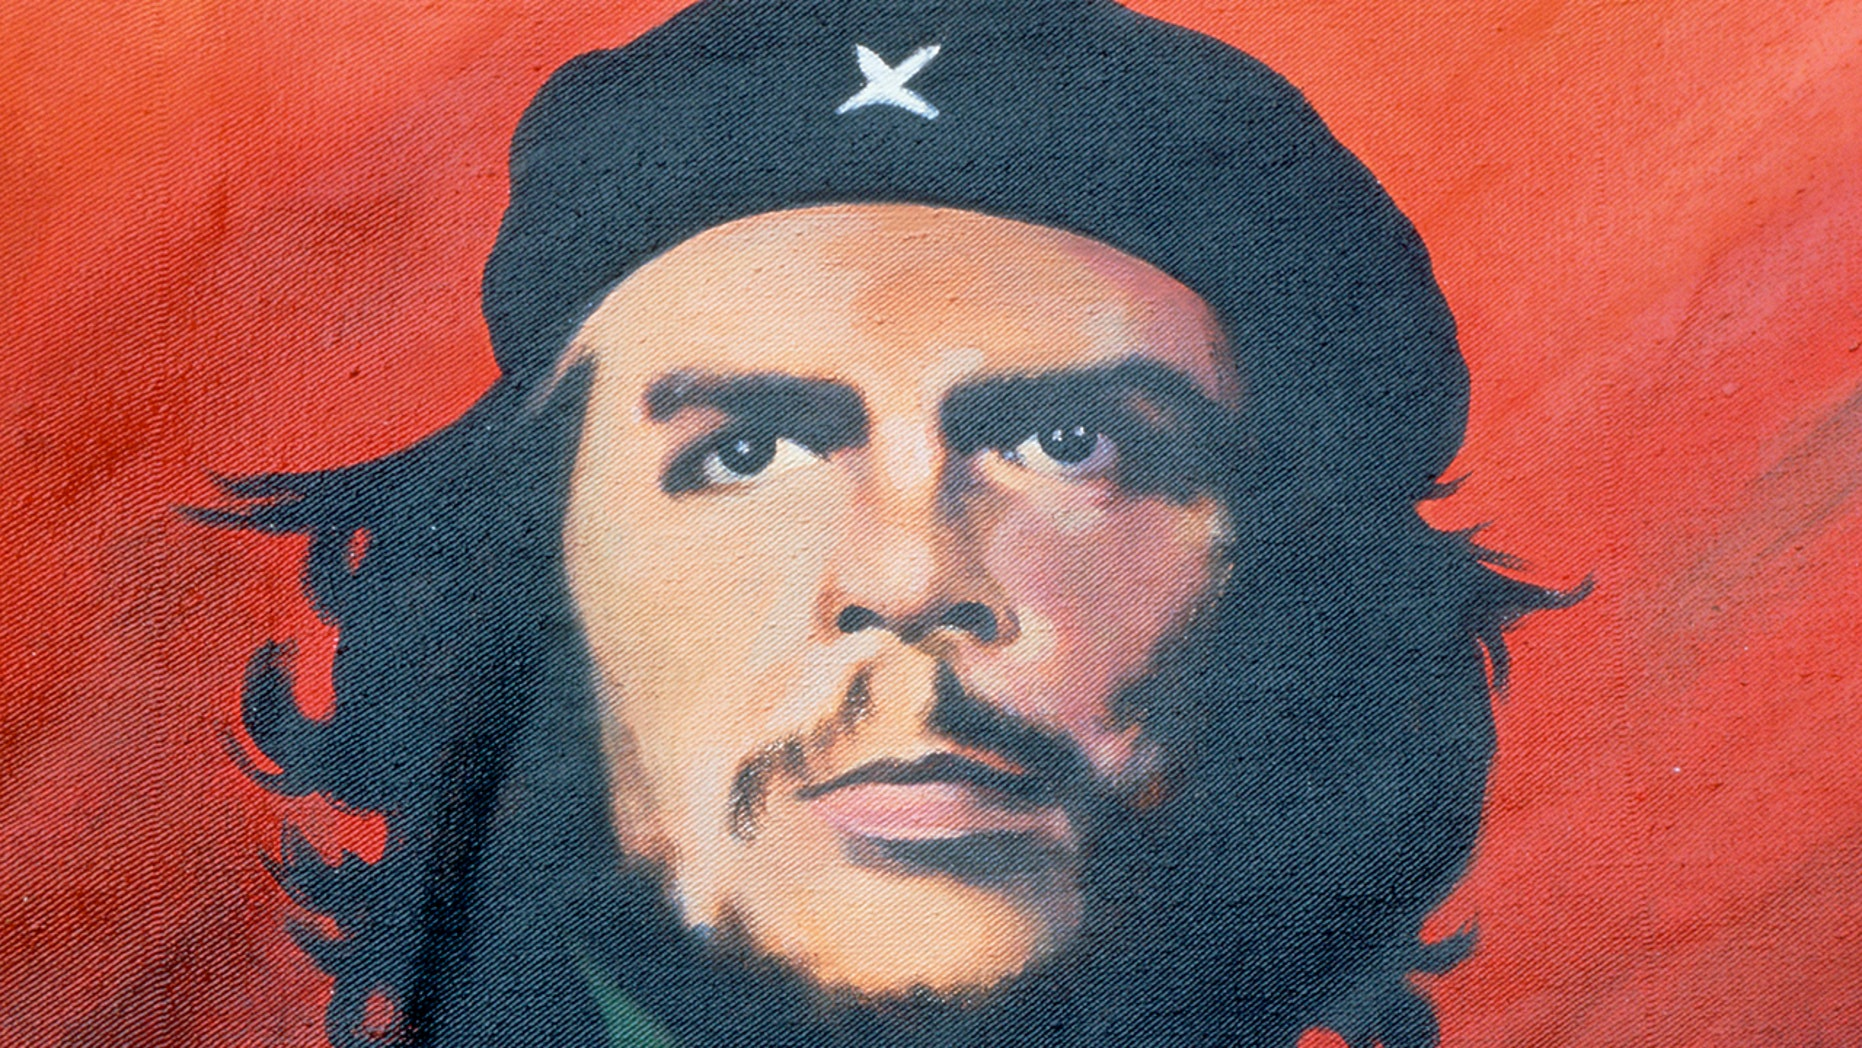 Cuban revolutionary Che Guevara is still idolized around the world. But his fans might not be aware of just what their idol did and said.